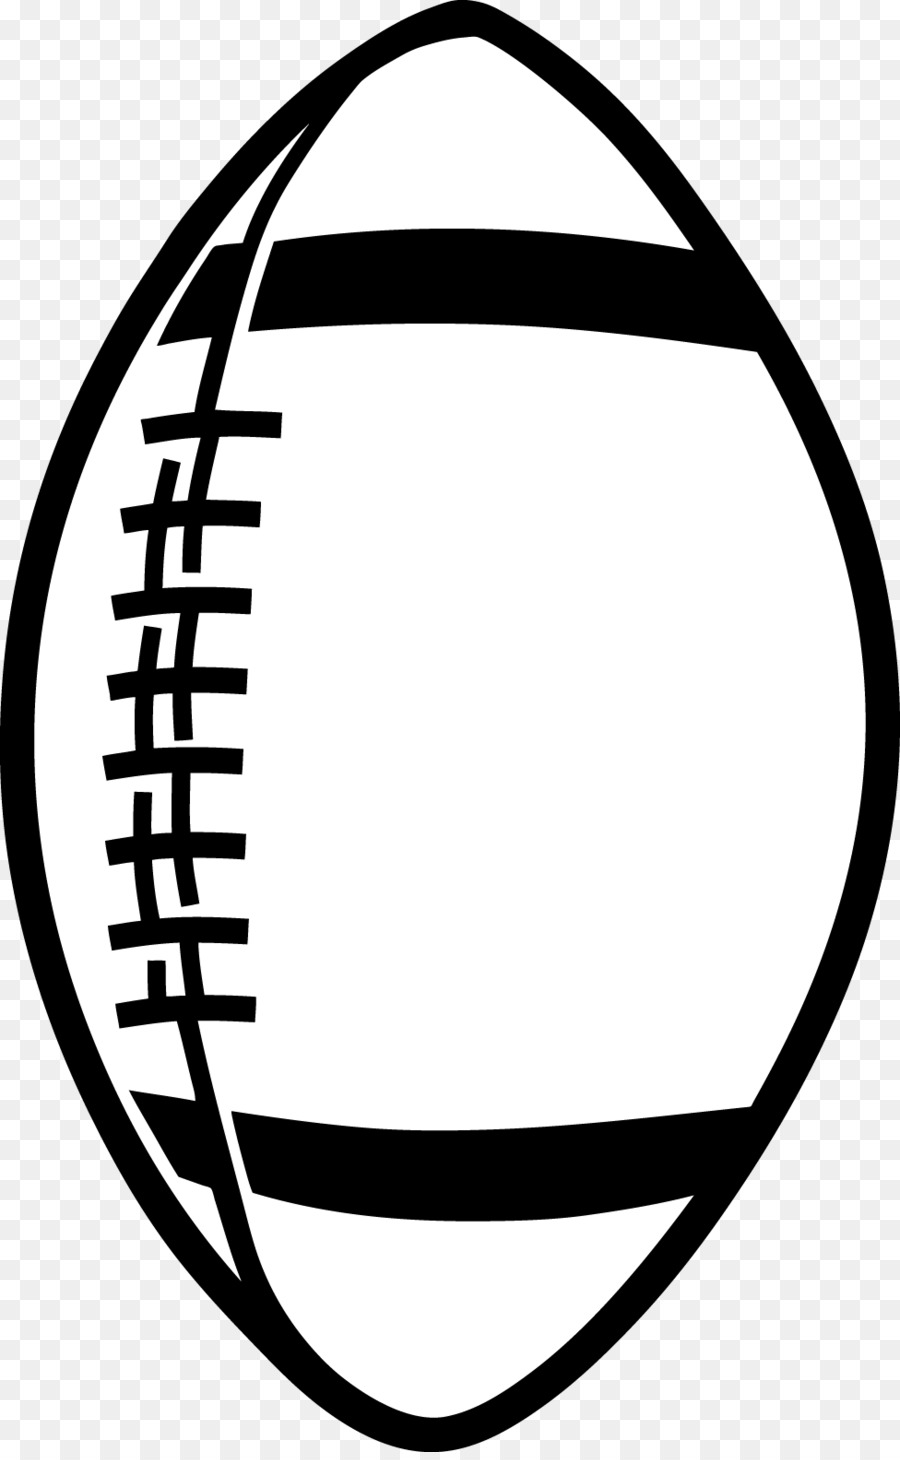 american football football player black and white clip art rh kisspng com playing football clipart black and white soccer player clipart black and white